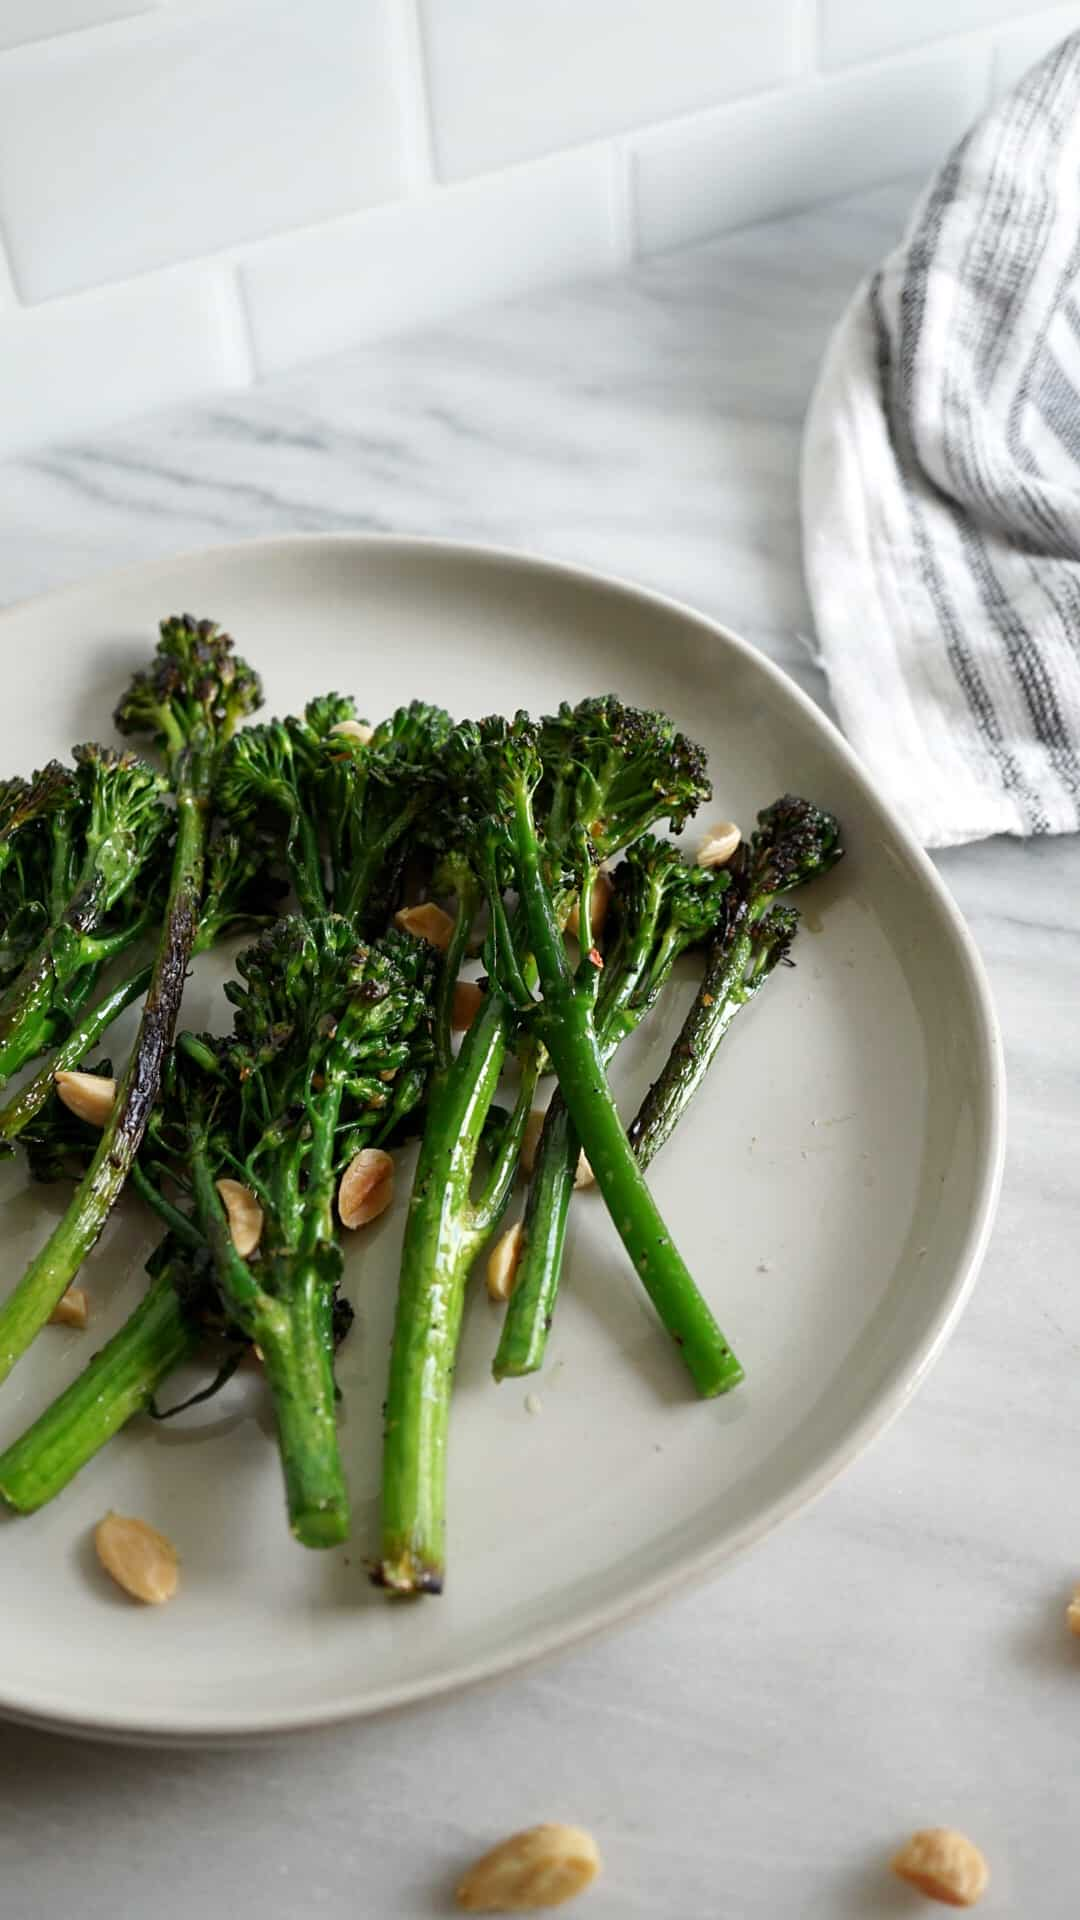 Broccolini and marcona almonds on a white plate with a striped dish towel